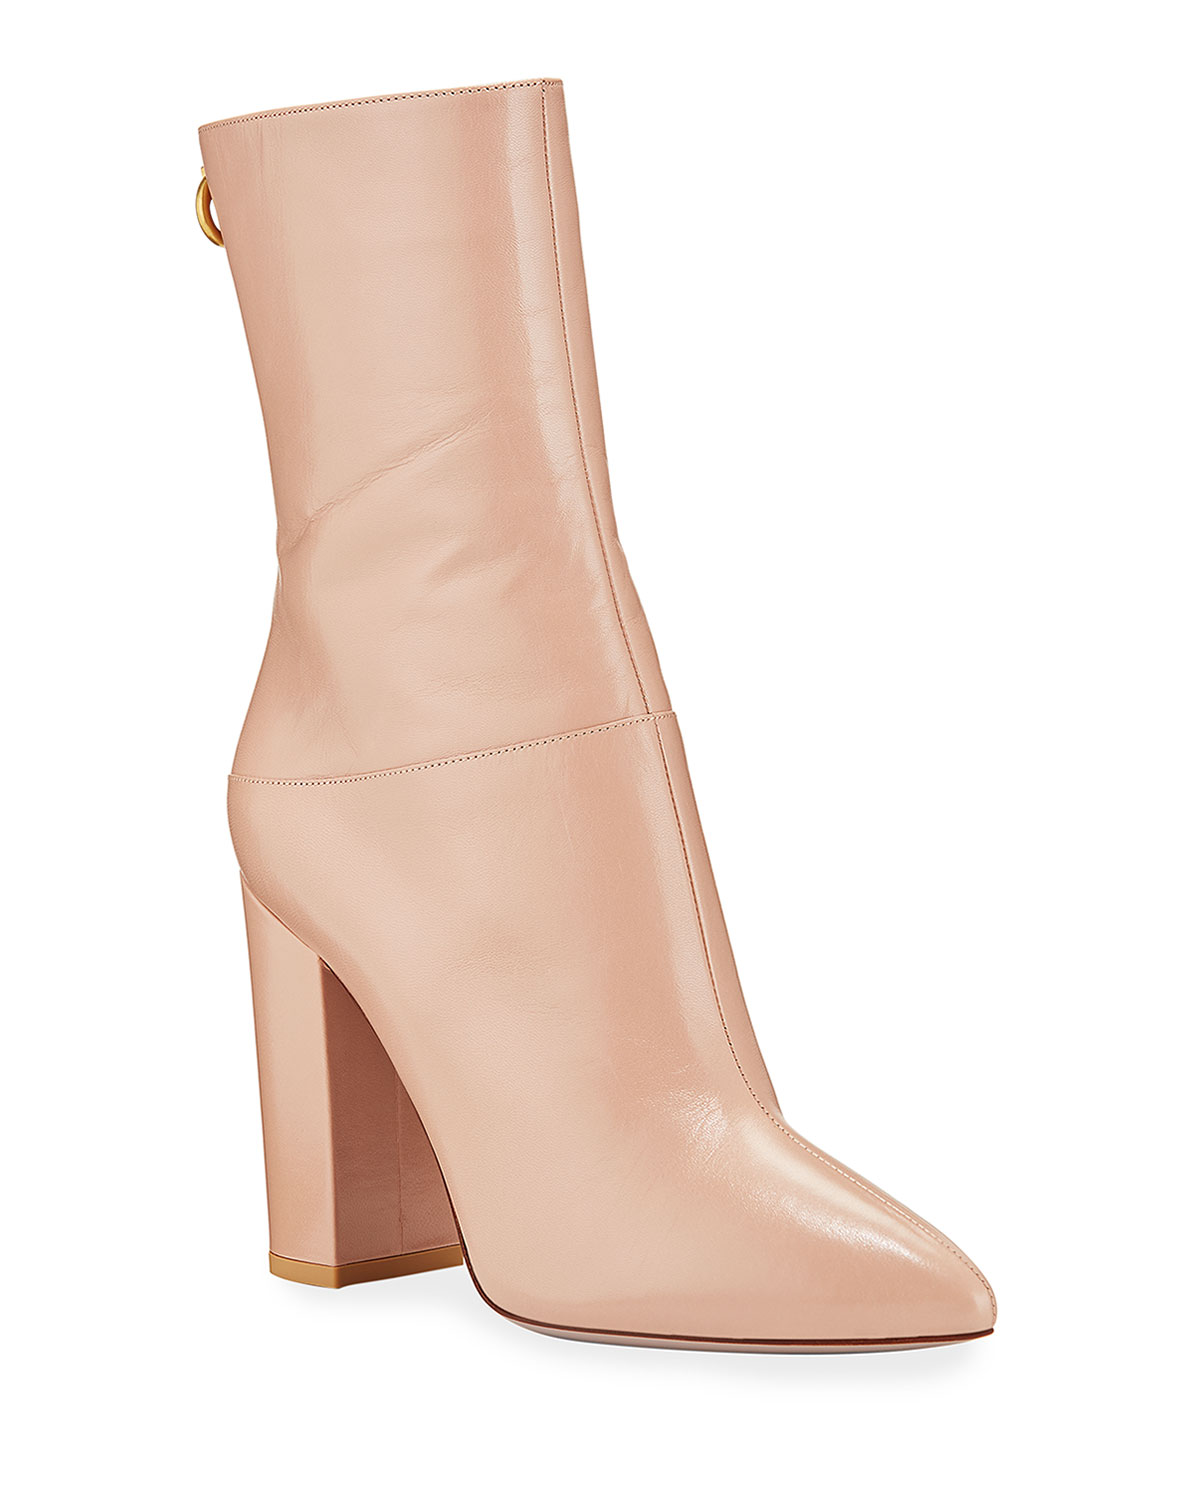 Ring Rockstud Leather Booties